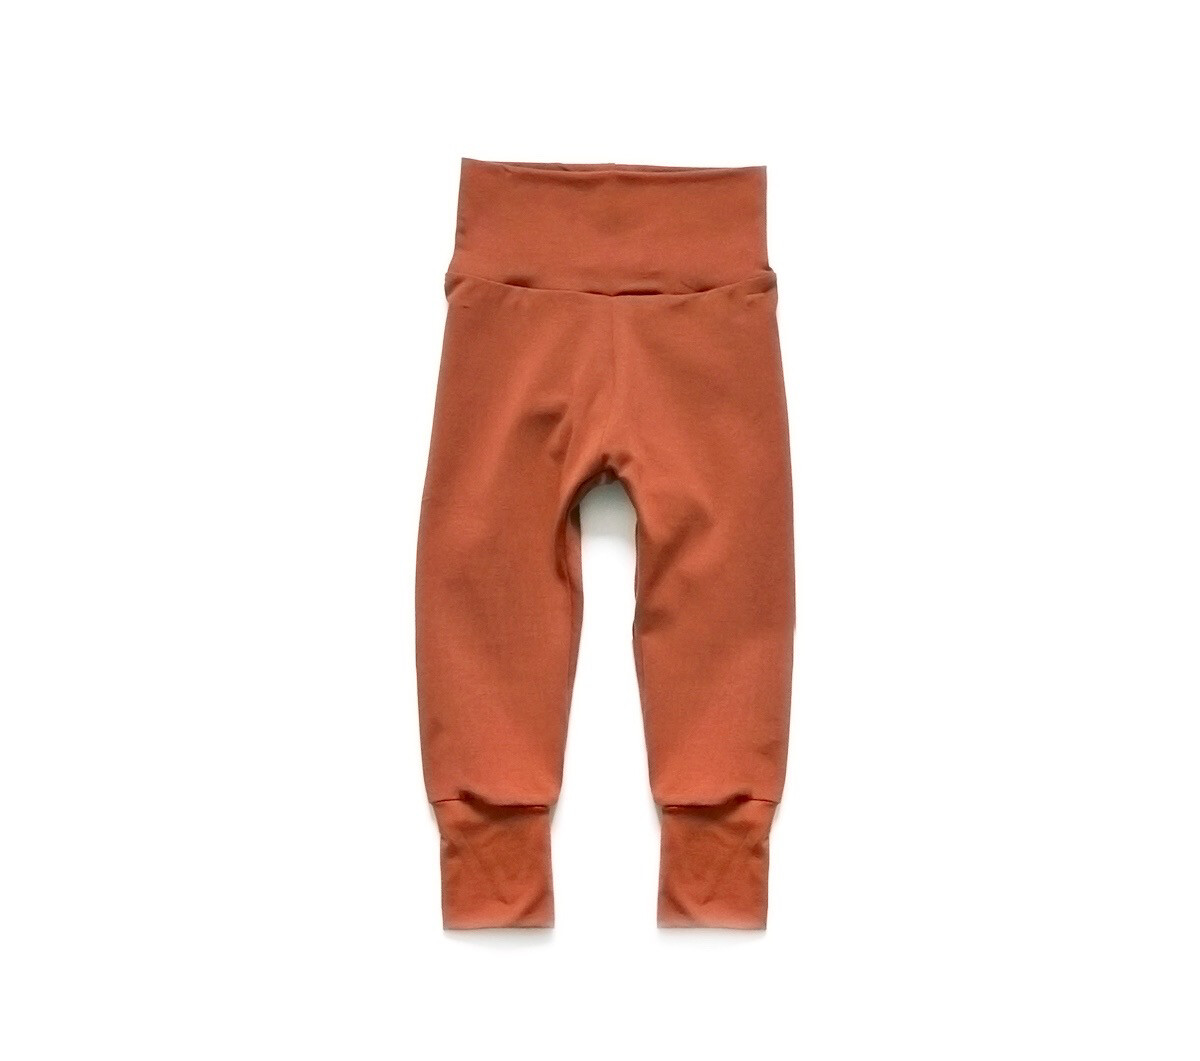 Bamboo Little Sprout Pants™ | Grow With Me Leggings | Terra Cotta